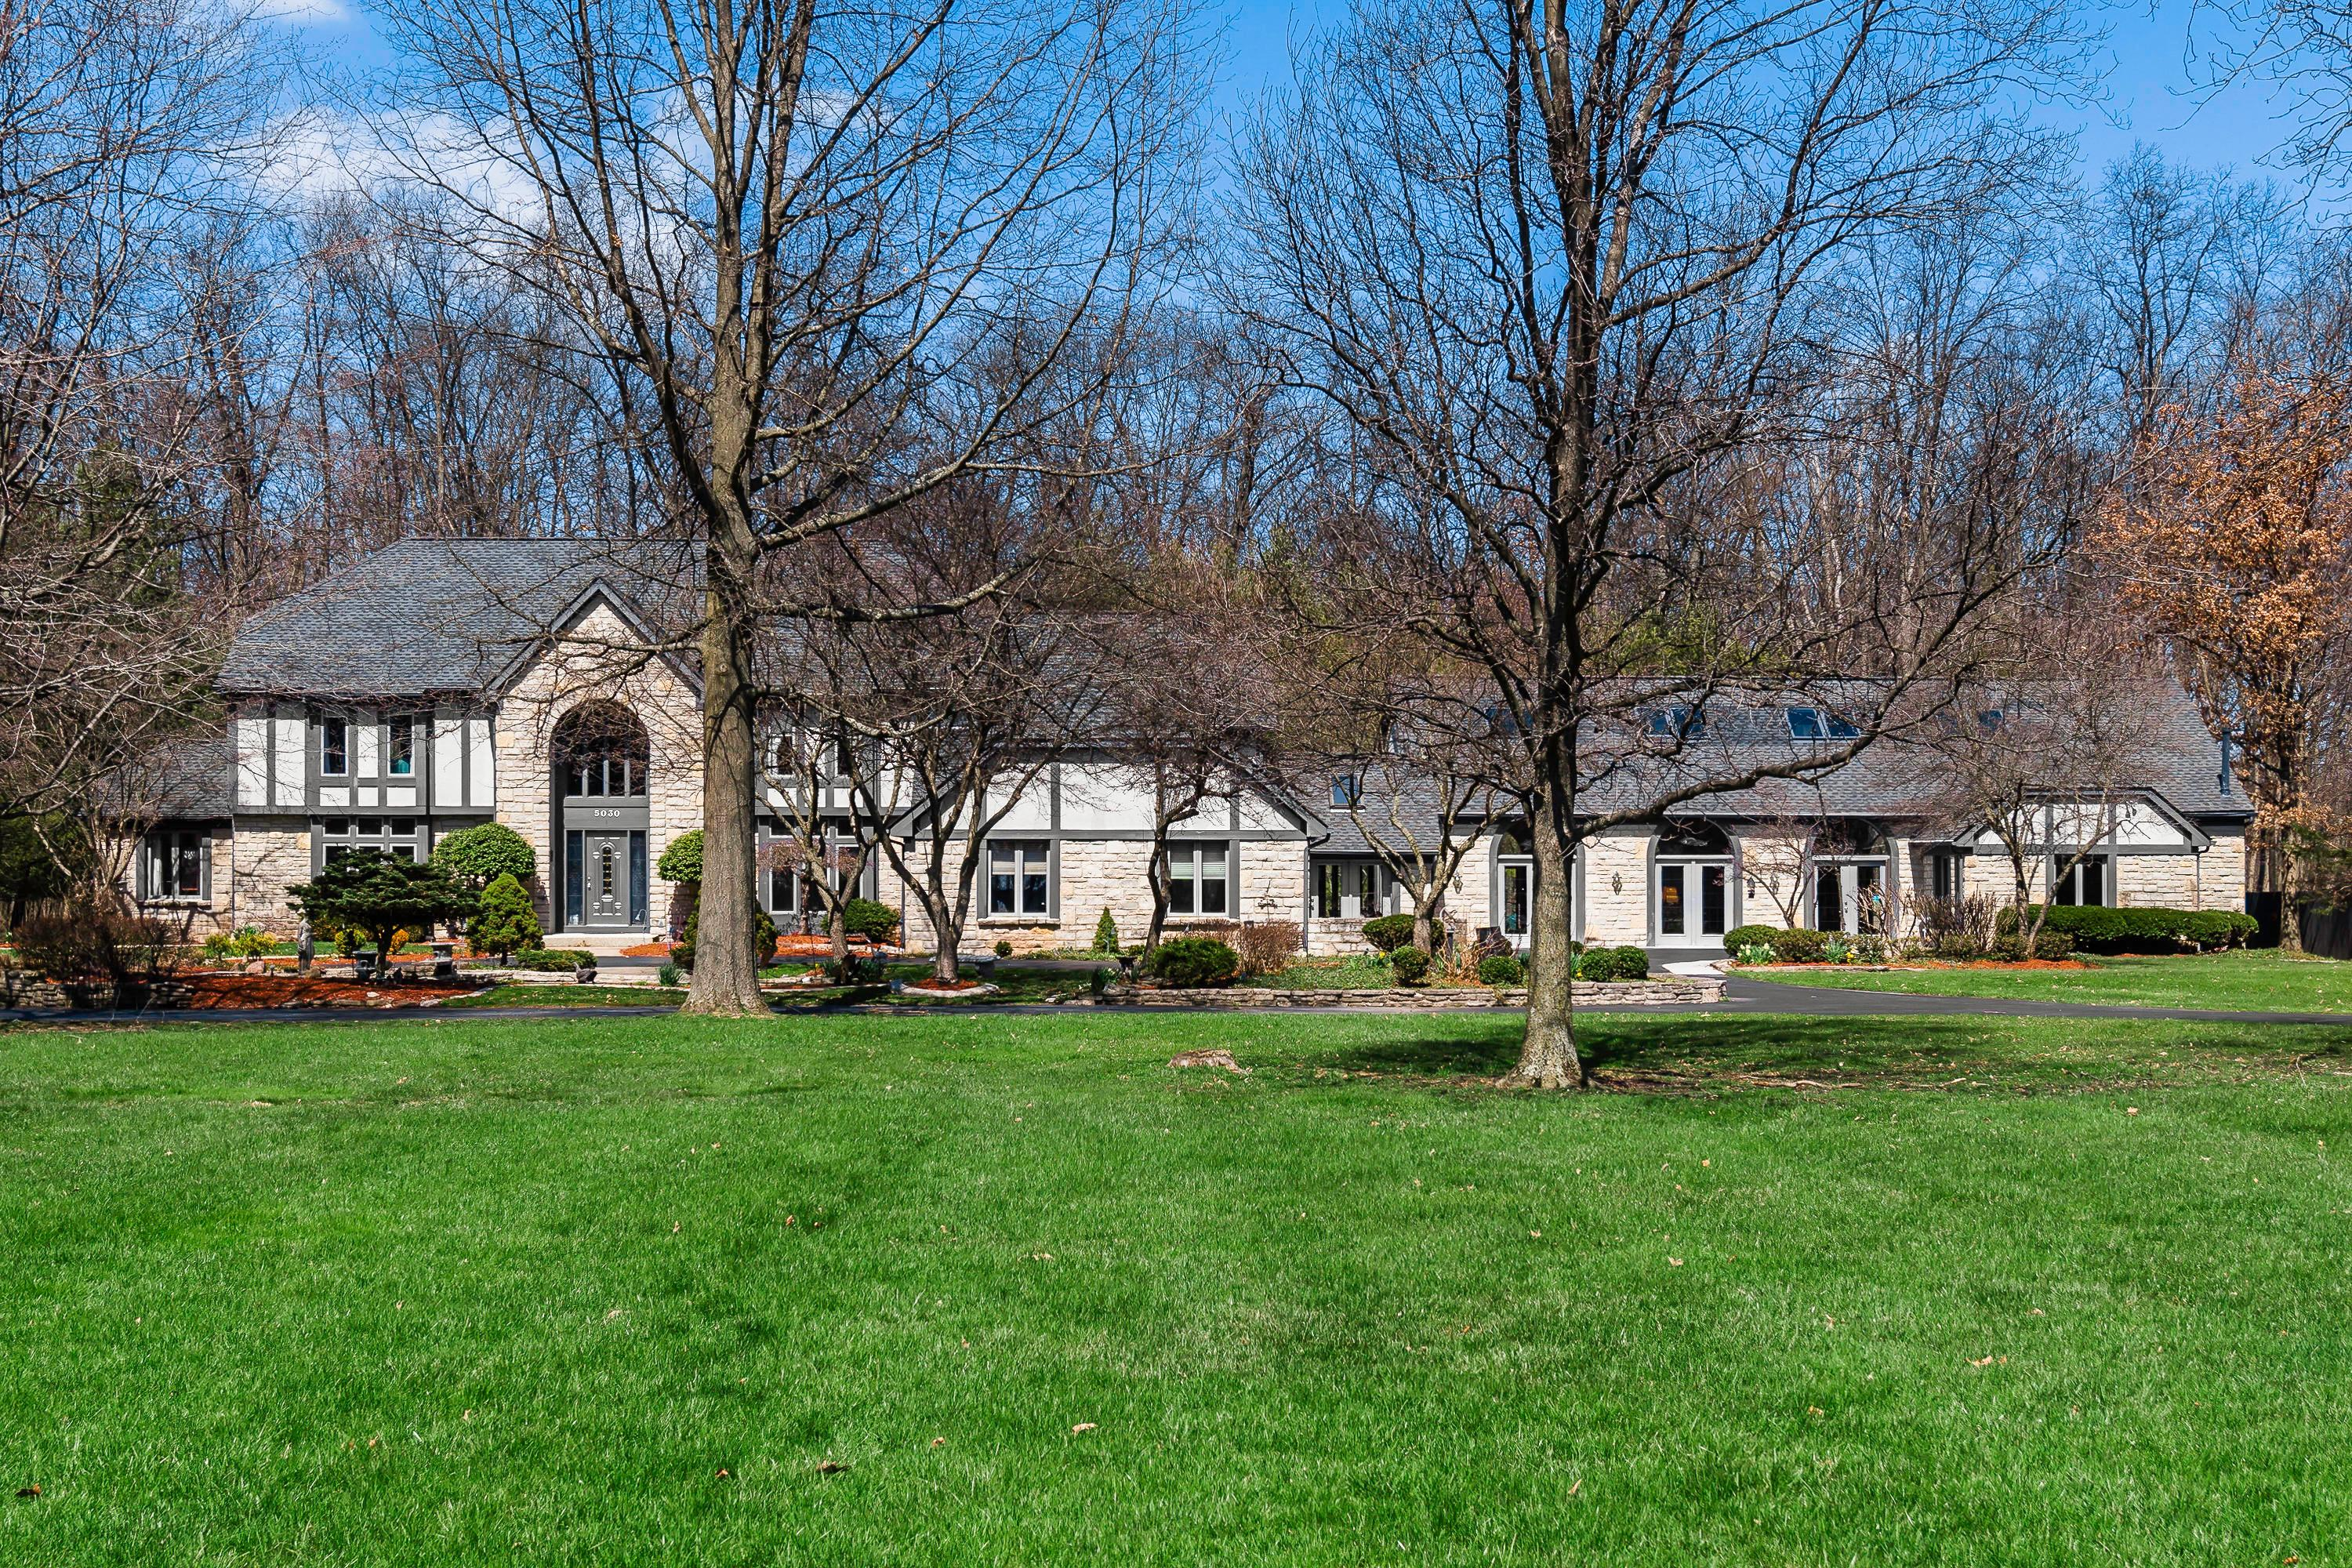 Photo of 5030 Smothers Road, Westerville, OH 43081